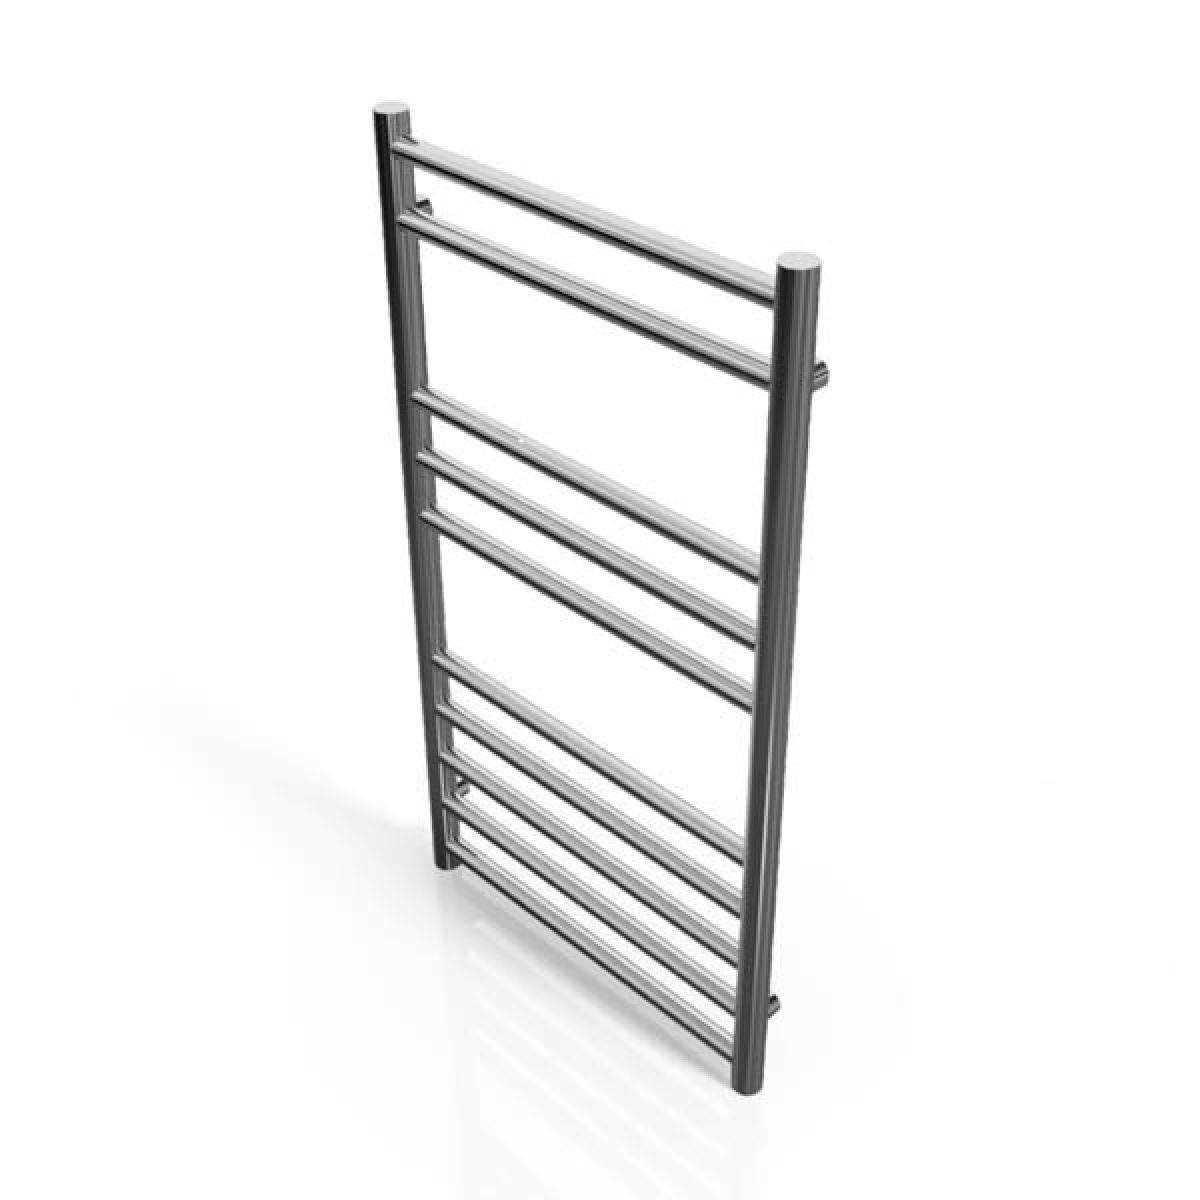 Cassellie Stainless Steel Straight Heated Towel Rail 800 x 450mm